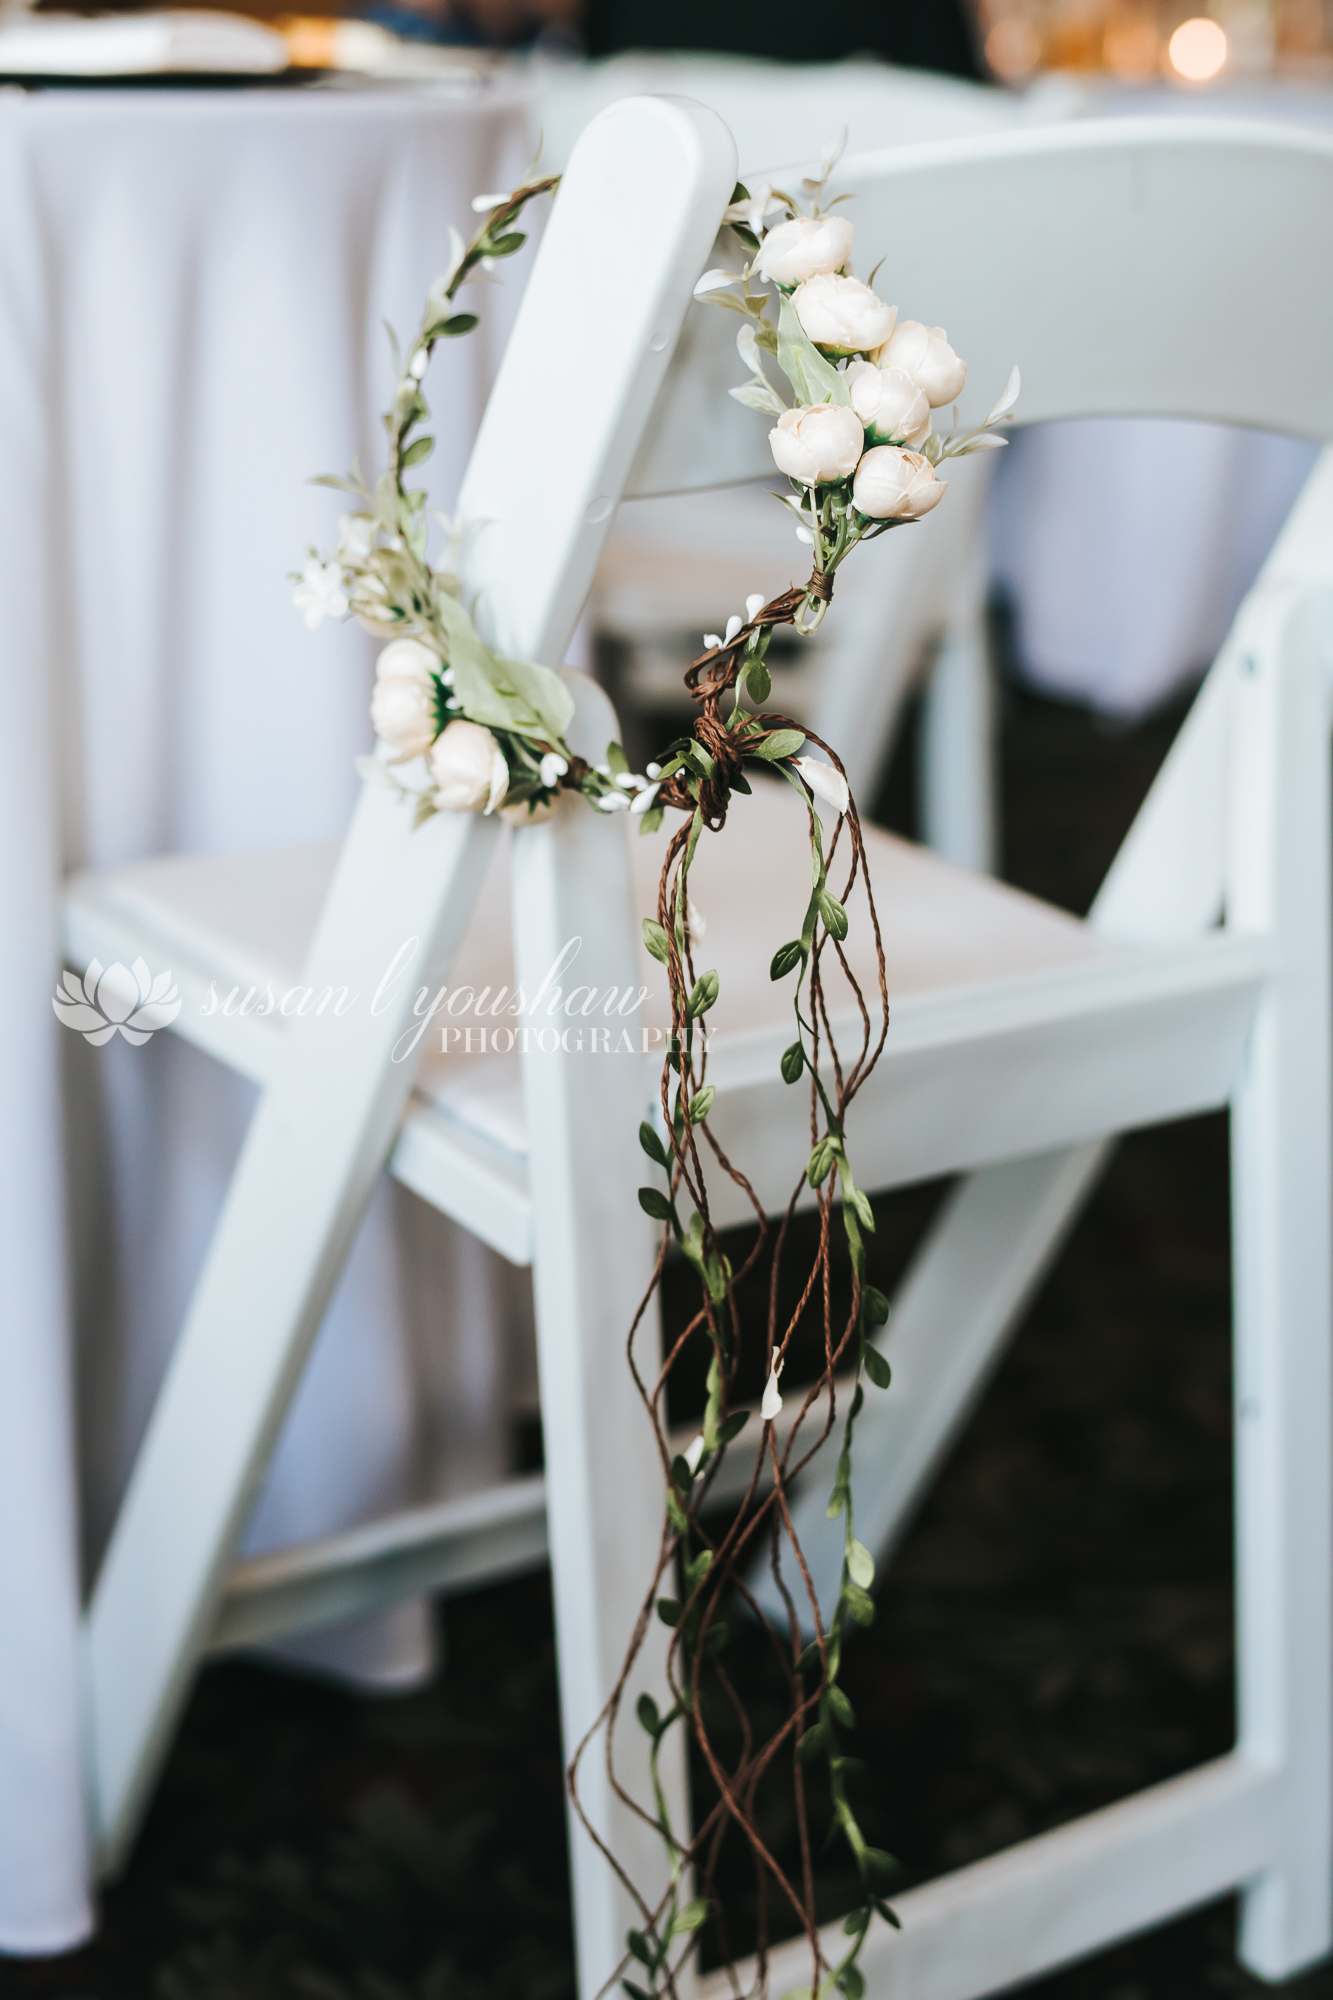 Chynna and John Wedding 05-18-2019 SLY Photography-114.jpg